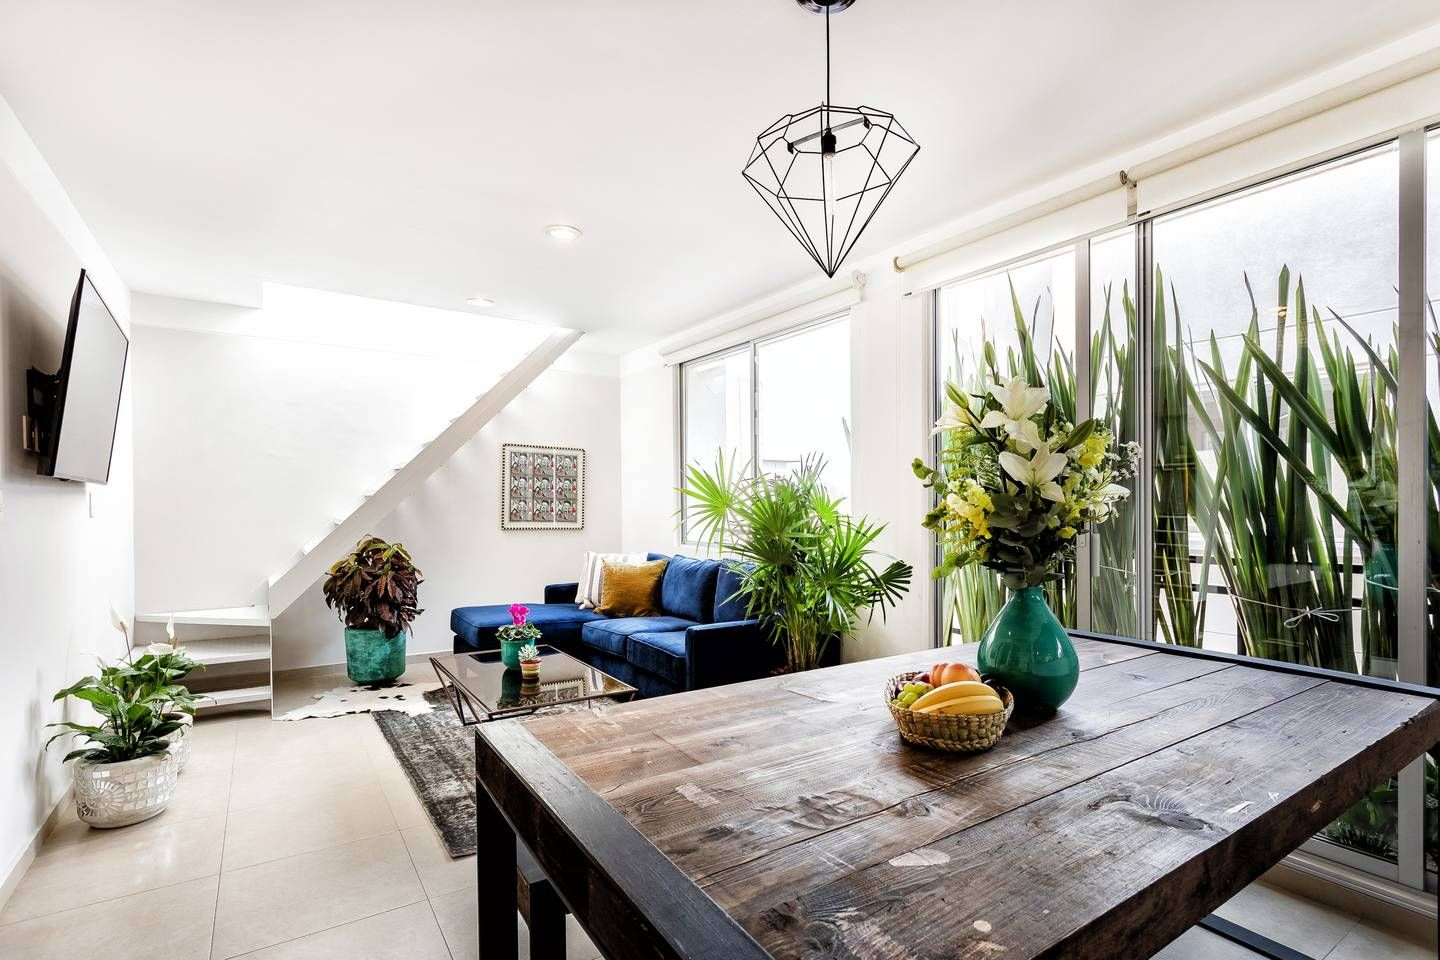 Penthouse In Roma Condesa With Private Roof Garden Serviced Apartments For Rent In Ciudad De Mexico Rustic Dining Table Apartments For Rent Pent House